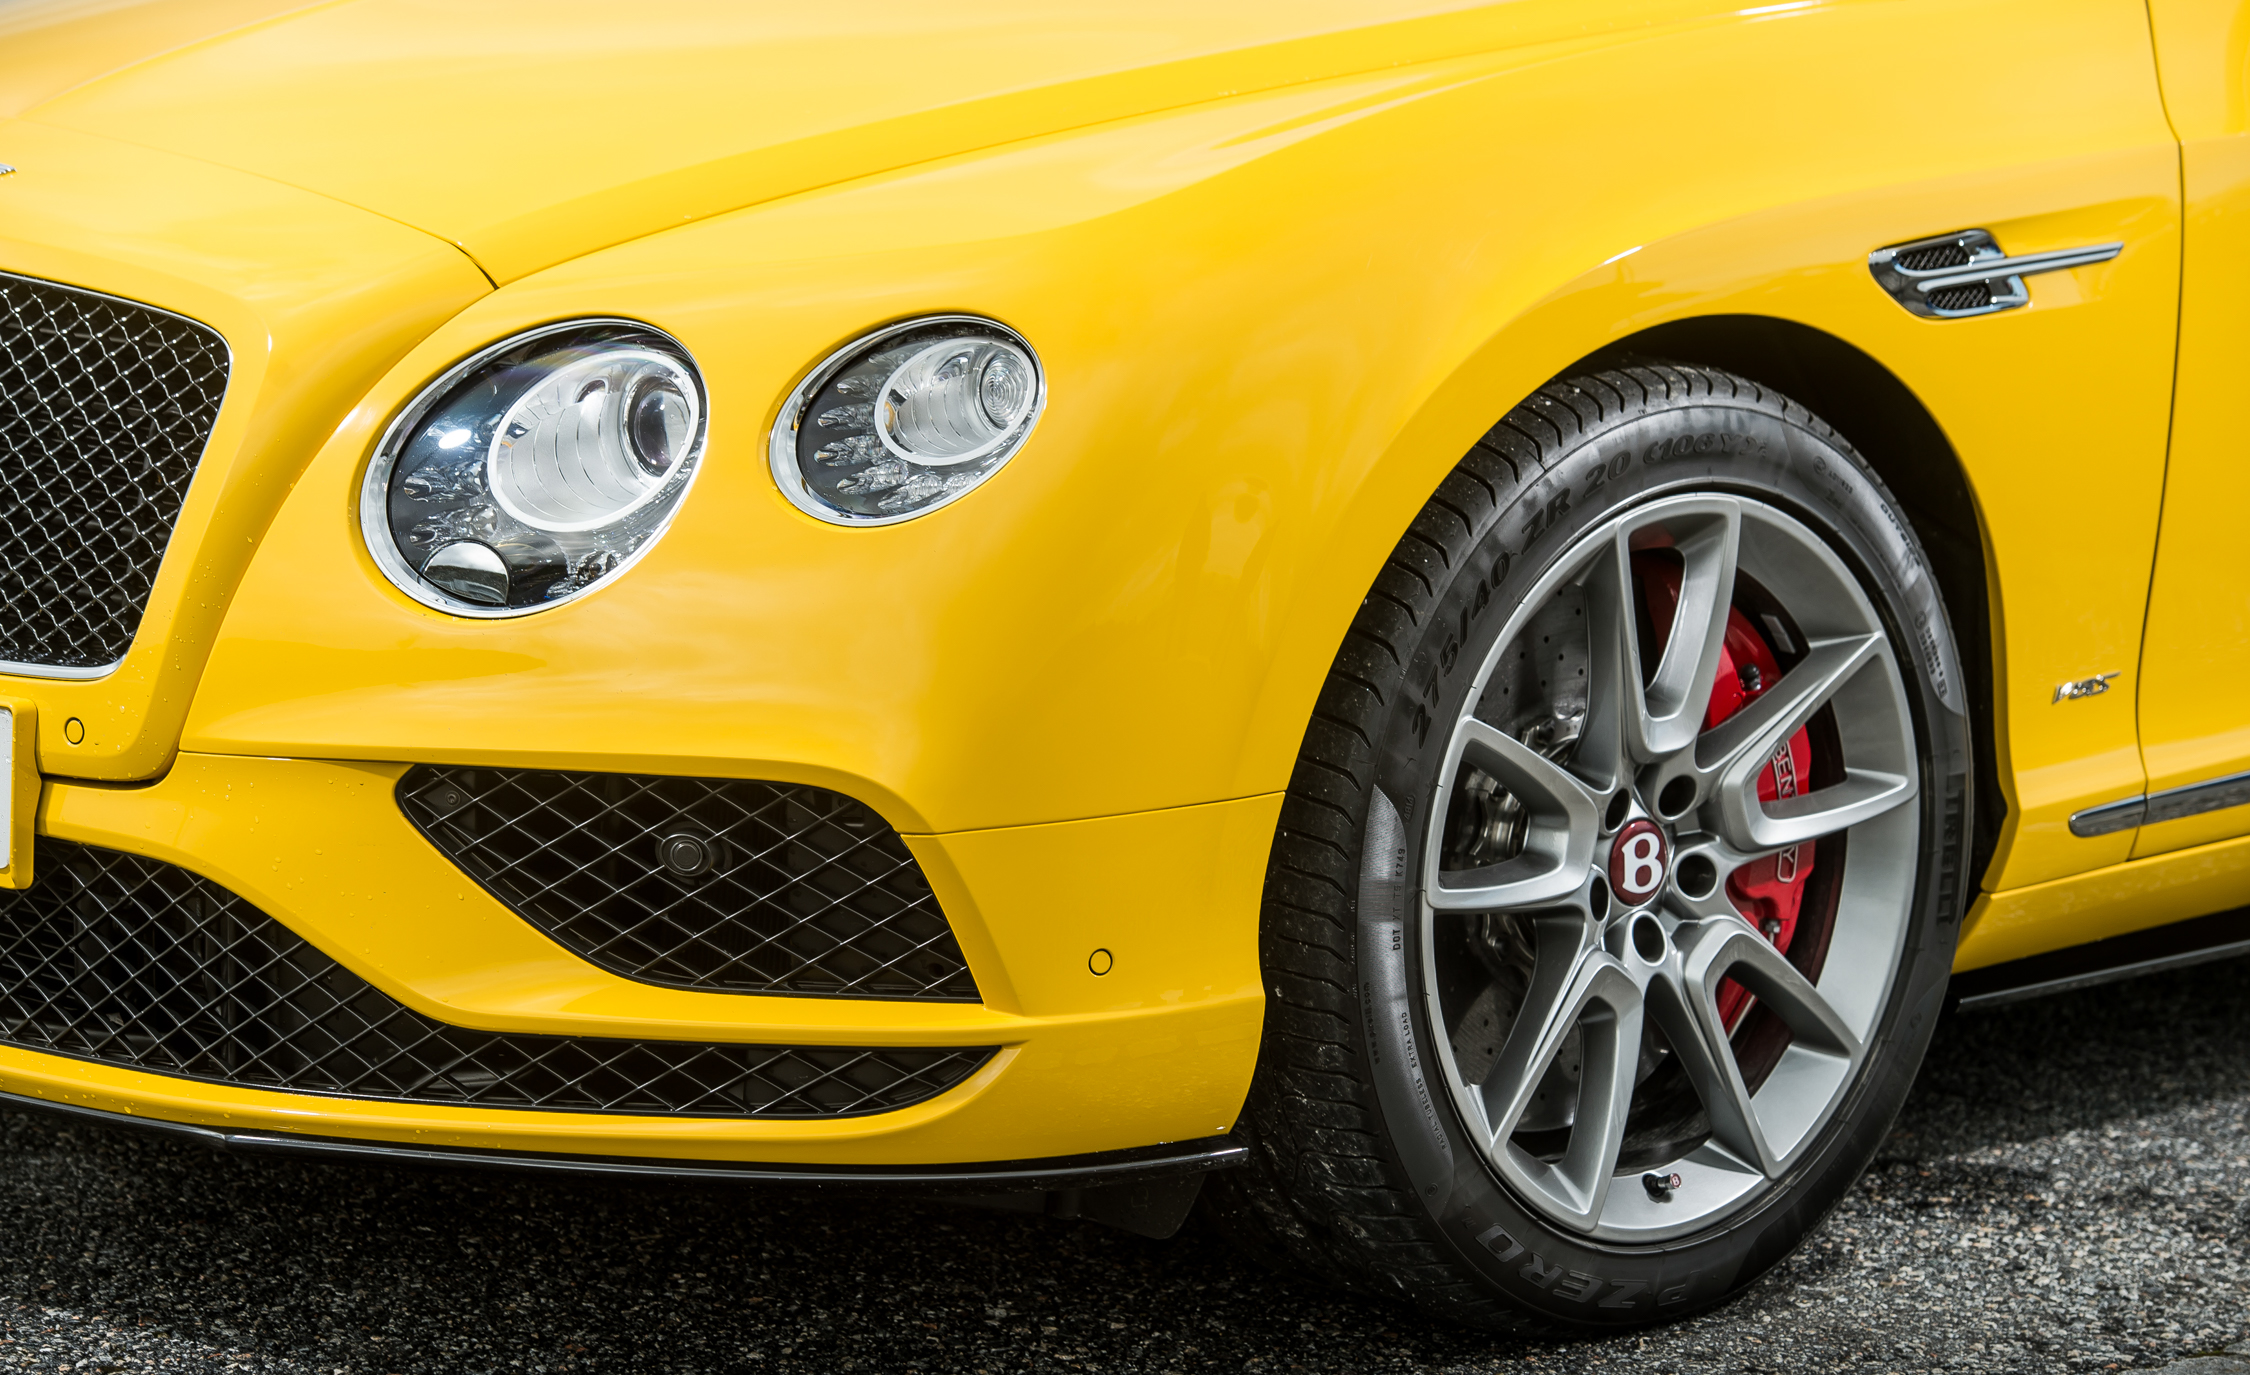 2016 Bentley Continental GT S Exterior Headlight